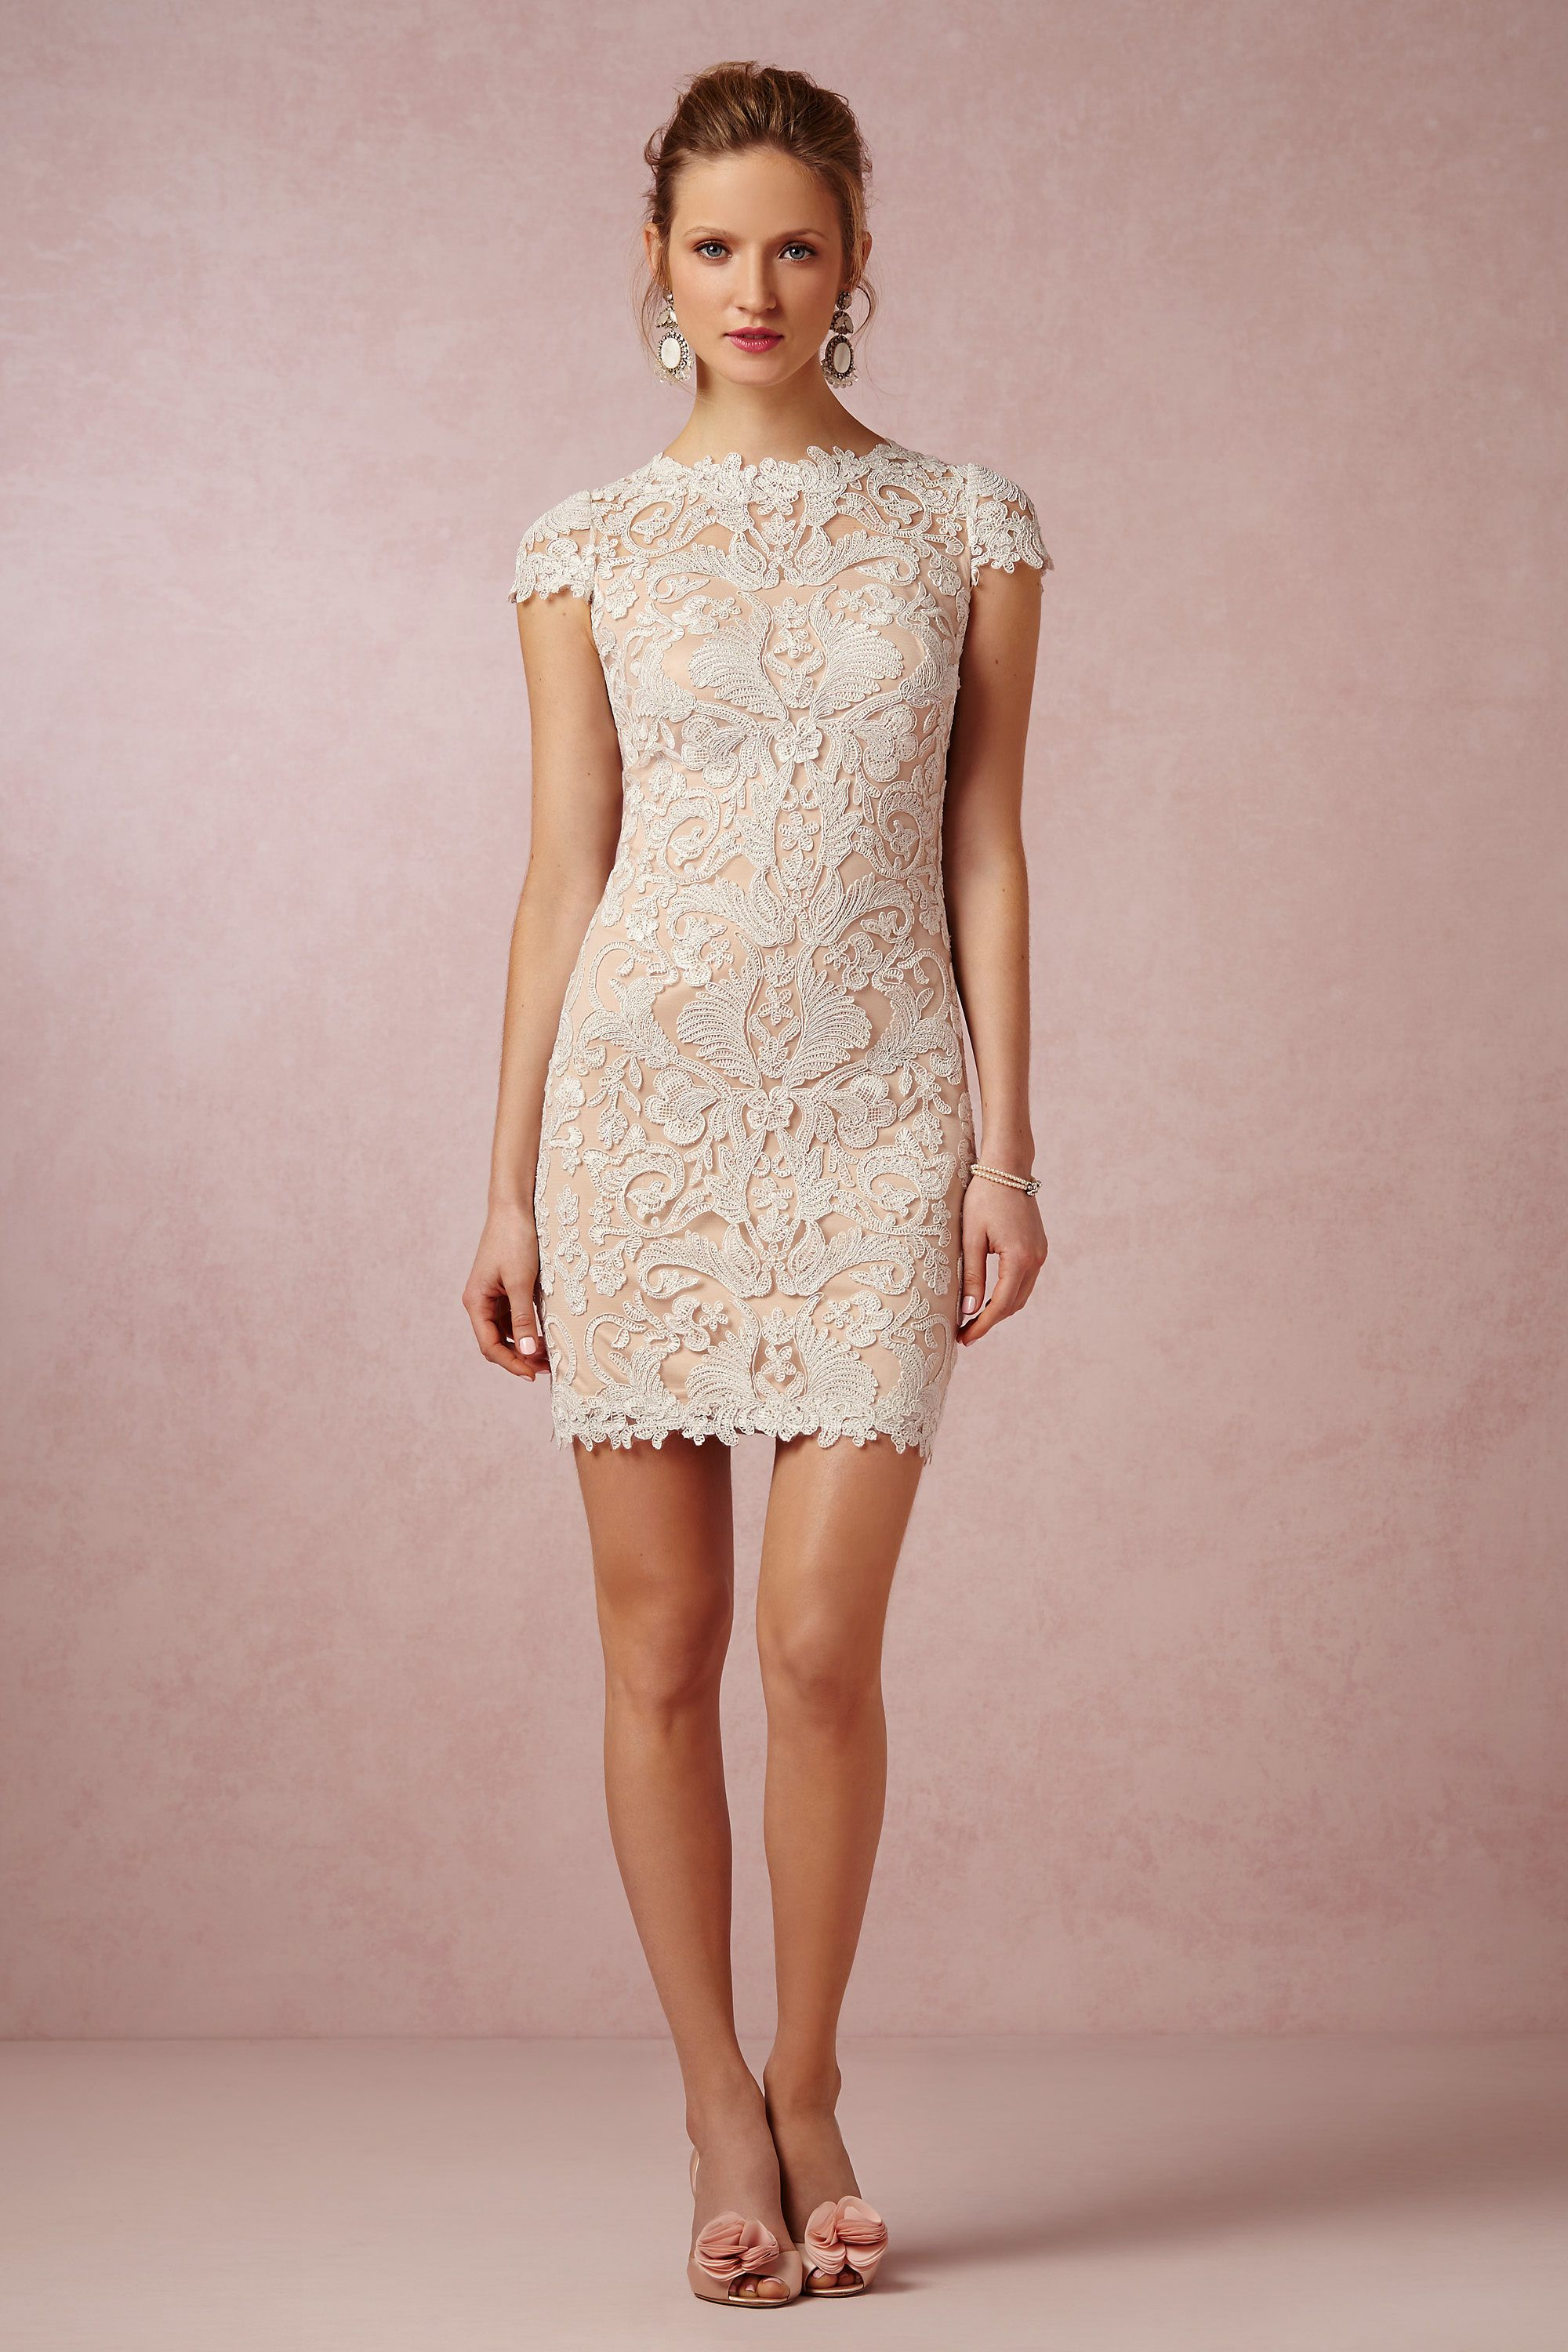 s7d1.scene7.com is image BHLDN 33075102_011_a?$press$ | Vestidos ...